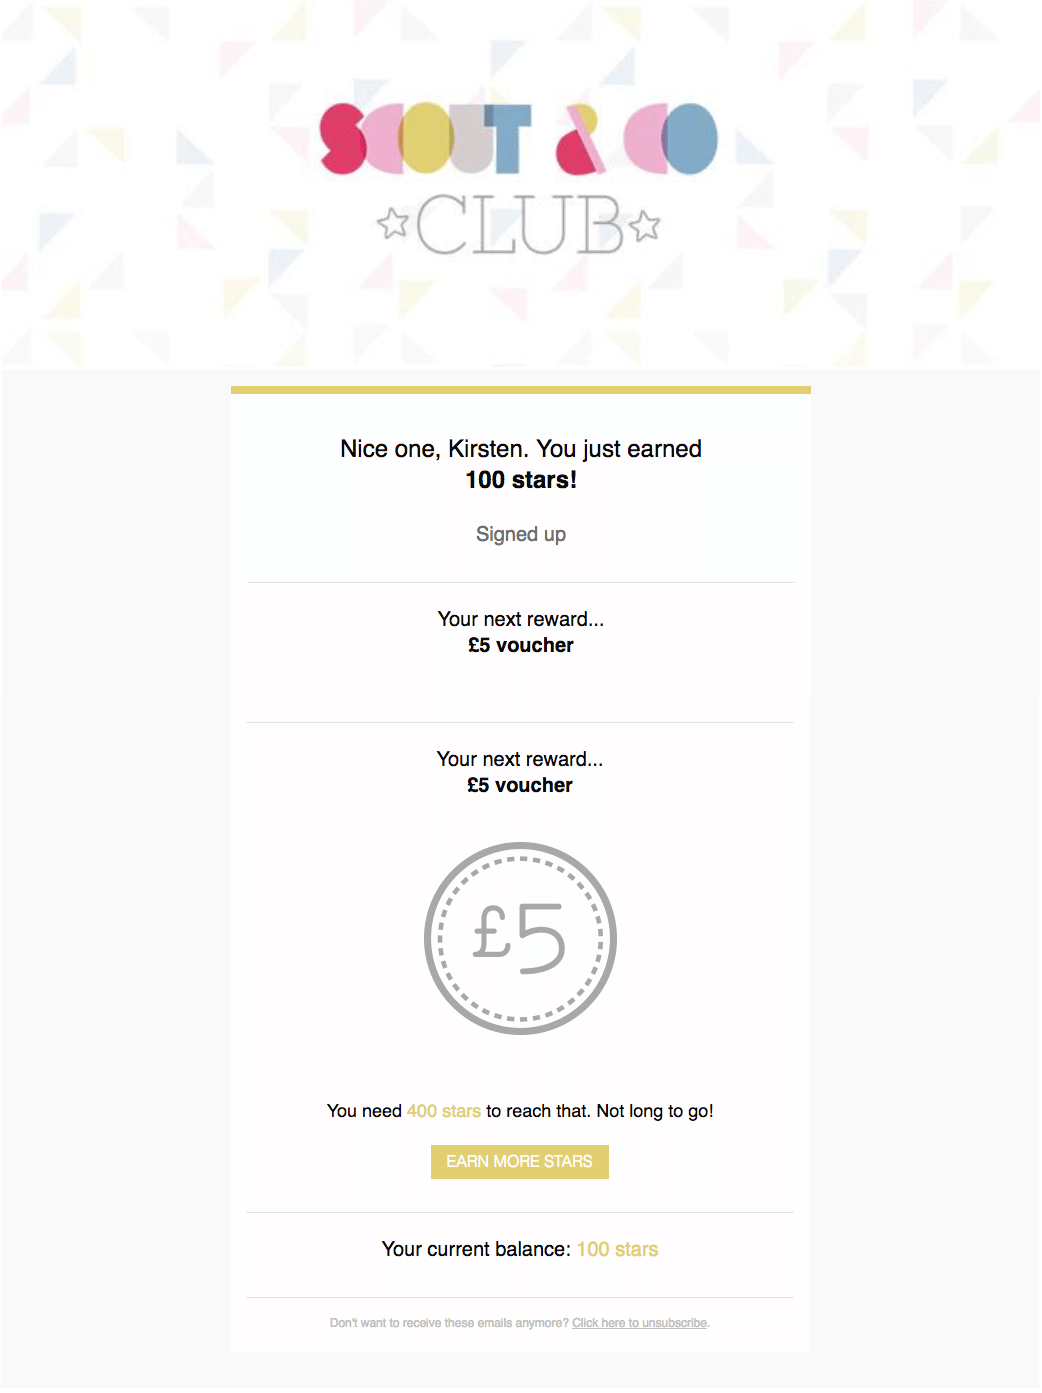 Scount & Co Club program status email